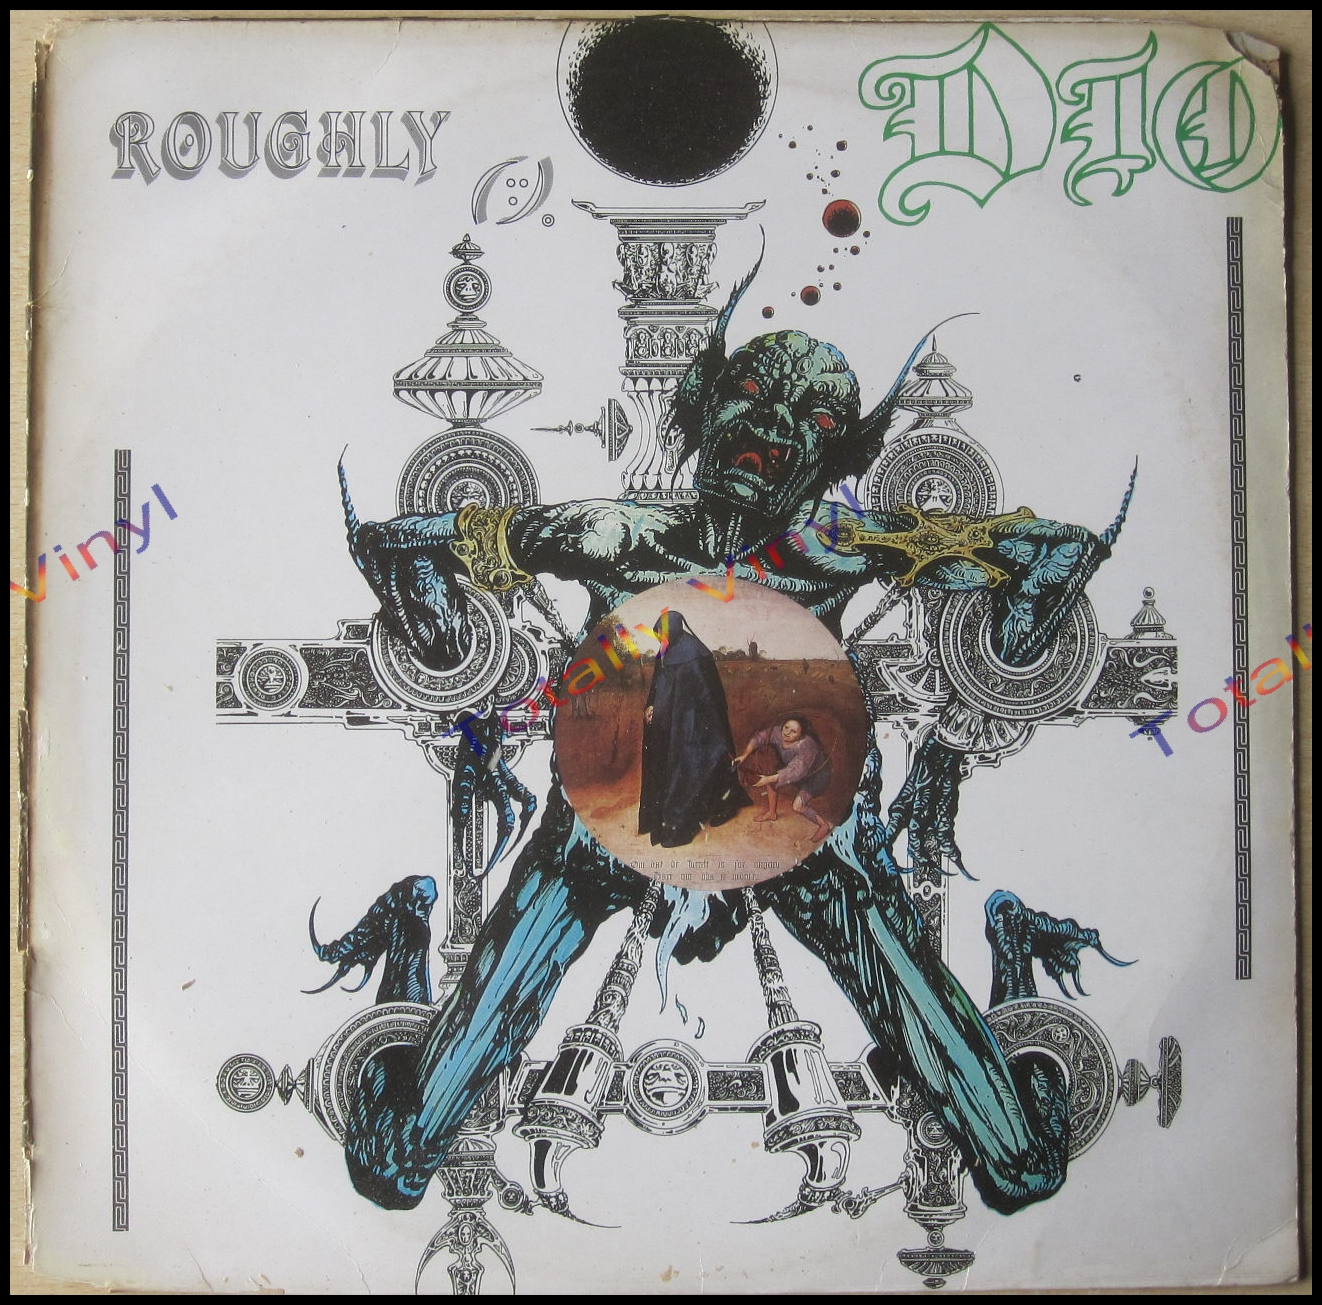 Totally Vinyl Records || Dio - Roughly LP